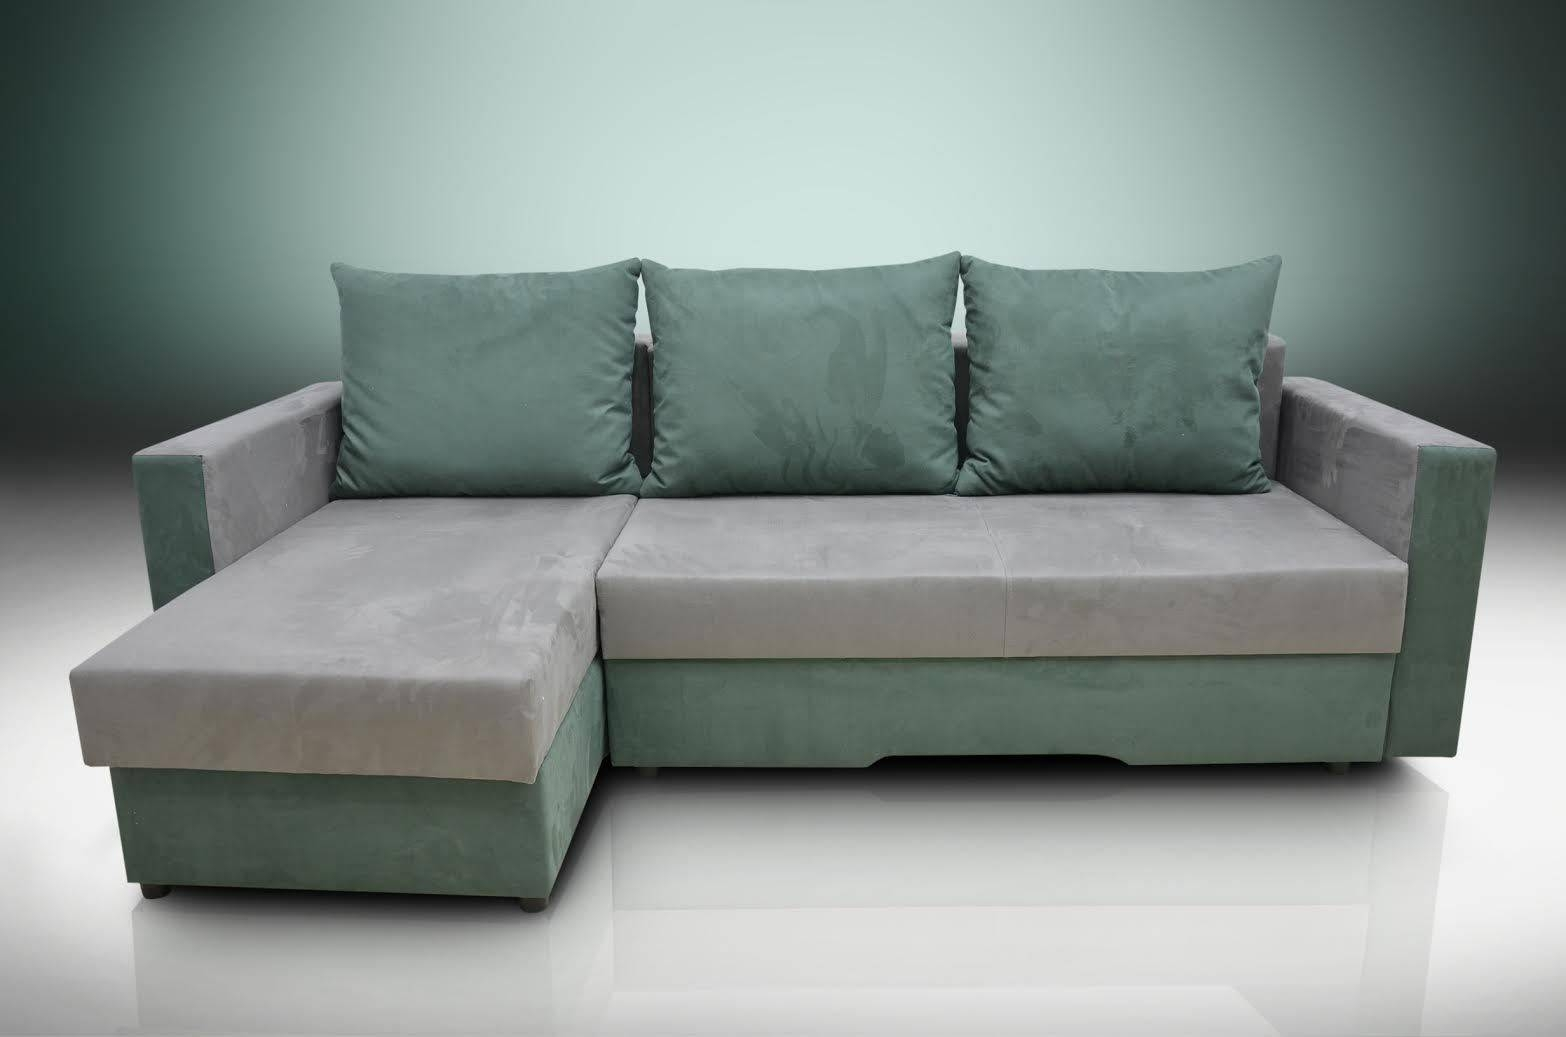 Sofa Bed Bristol Grey/forest Green Faux Suede Fabric throughout Faux Suede Sofa Bed (Image 22 of 25)